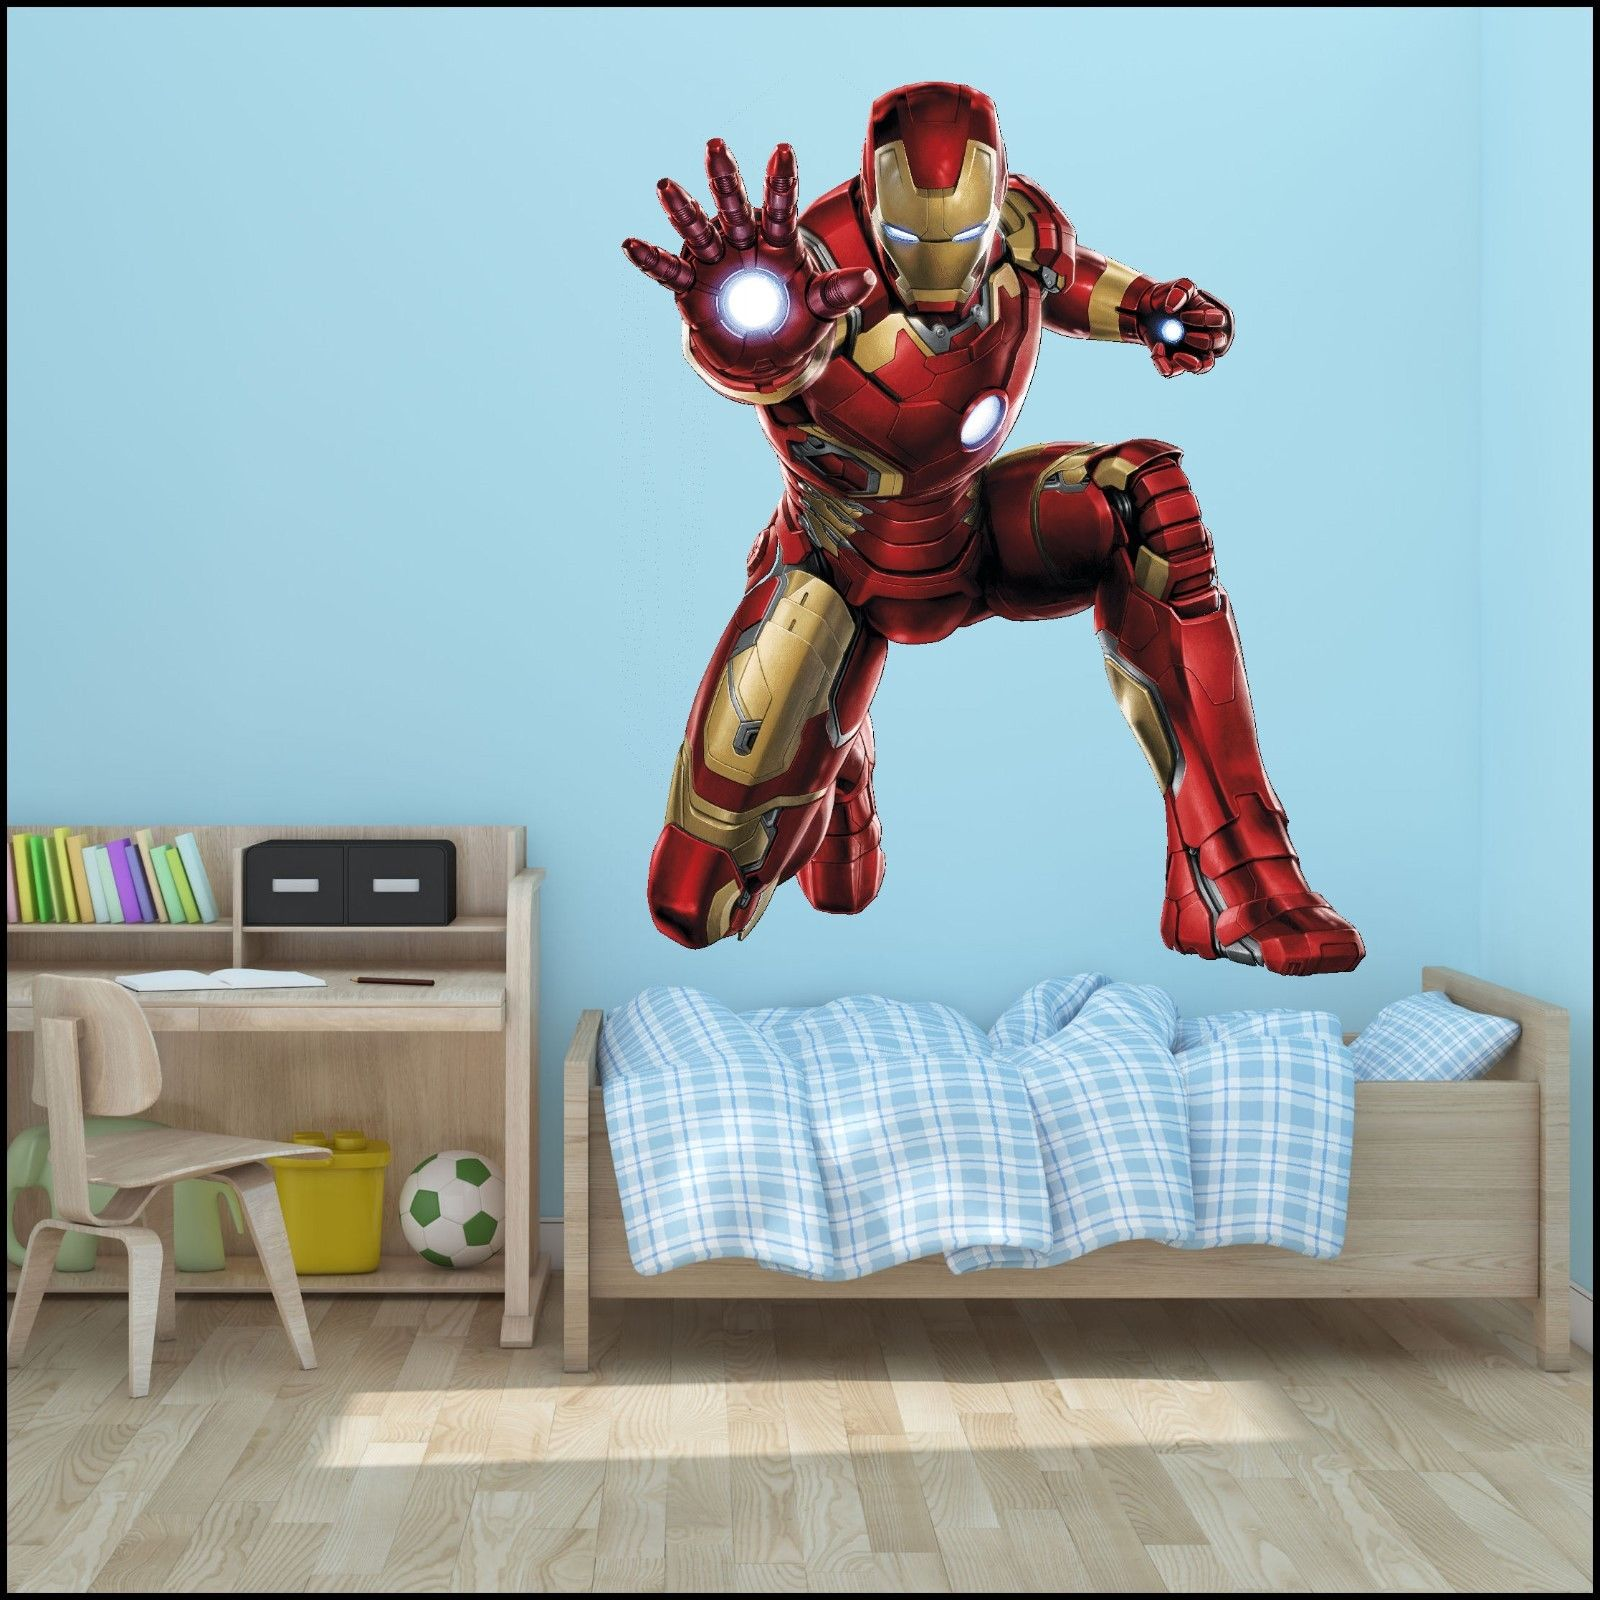 Large Iron Man Avengers Wall Sticker Mural Art 7 Sizes To Choose Xxl